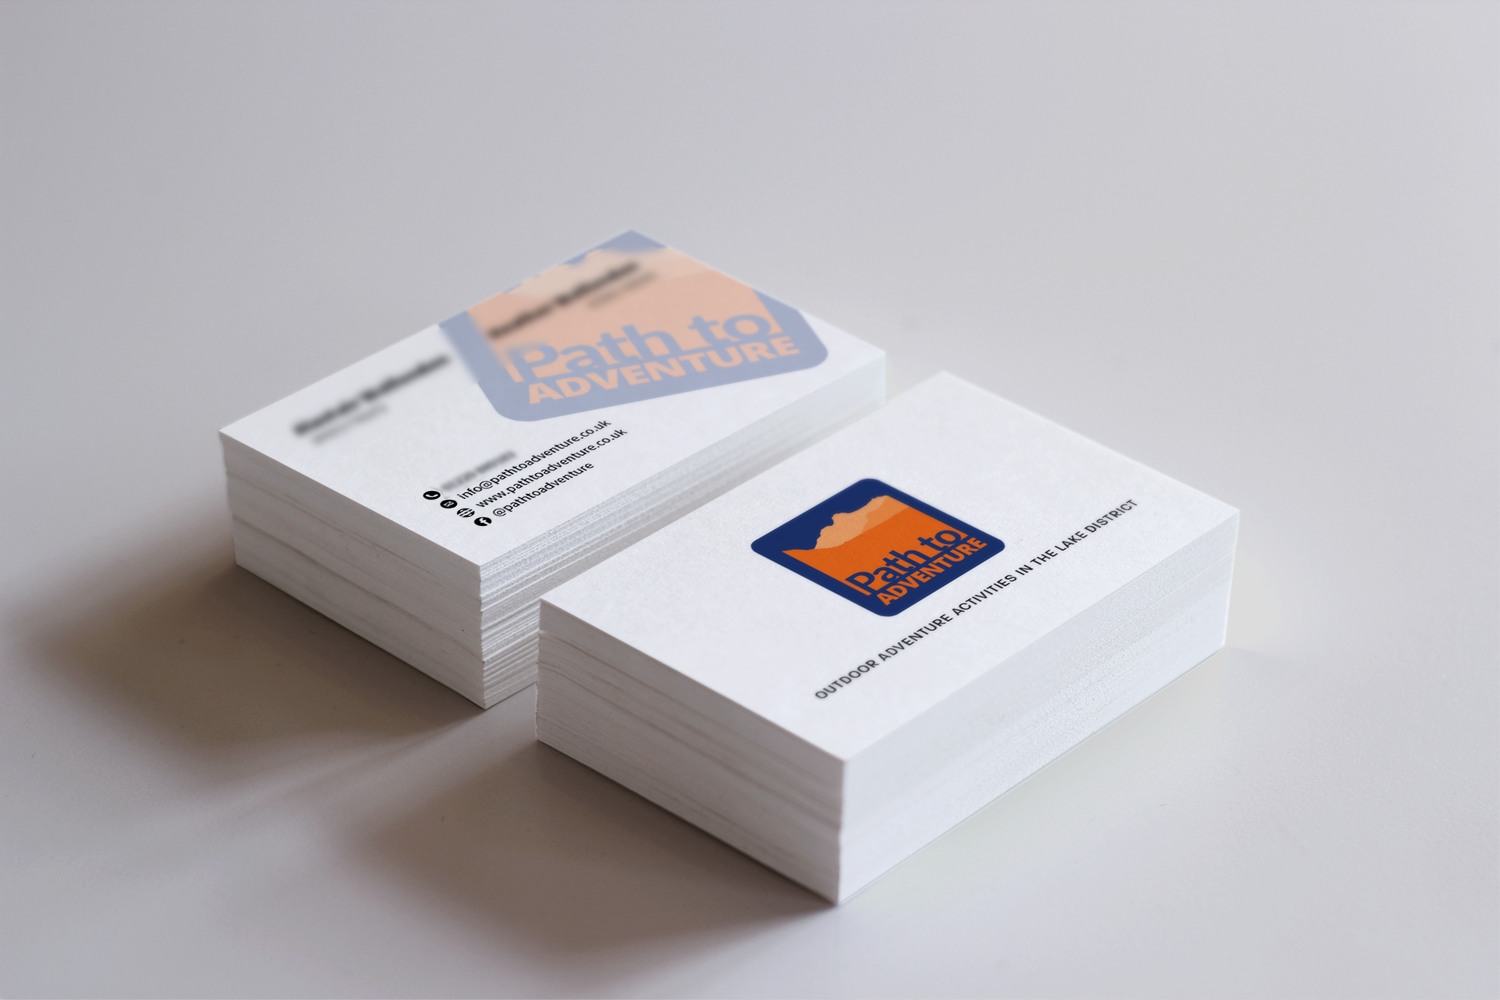 Two stacks of business cards